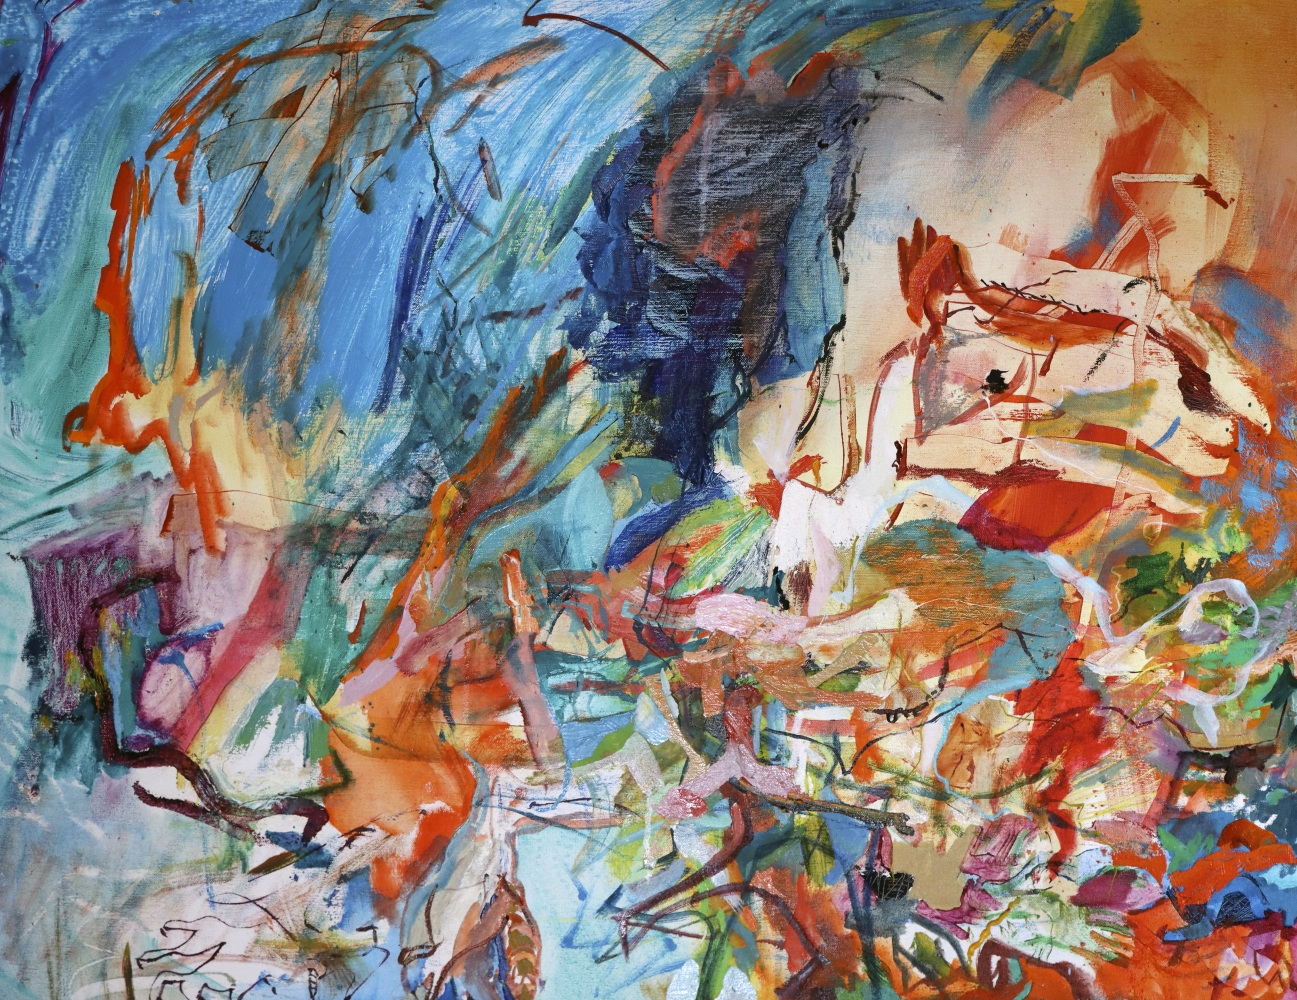 """Artist Benjamin Passione, 24.5"""" by 32"""", Oil On Canvas, Titled Sketch Bird Of Prey"""